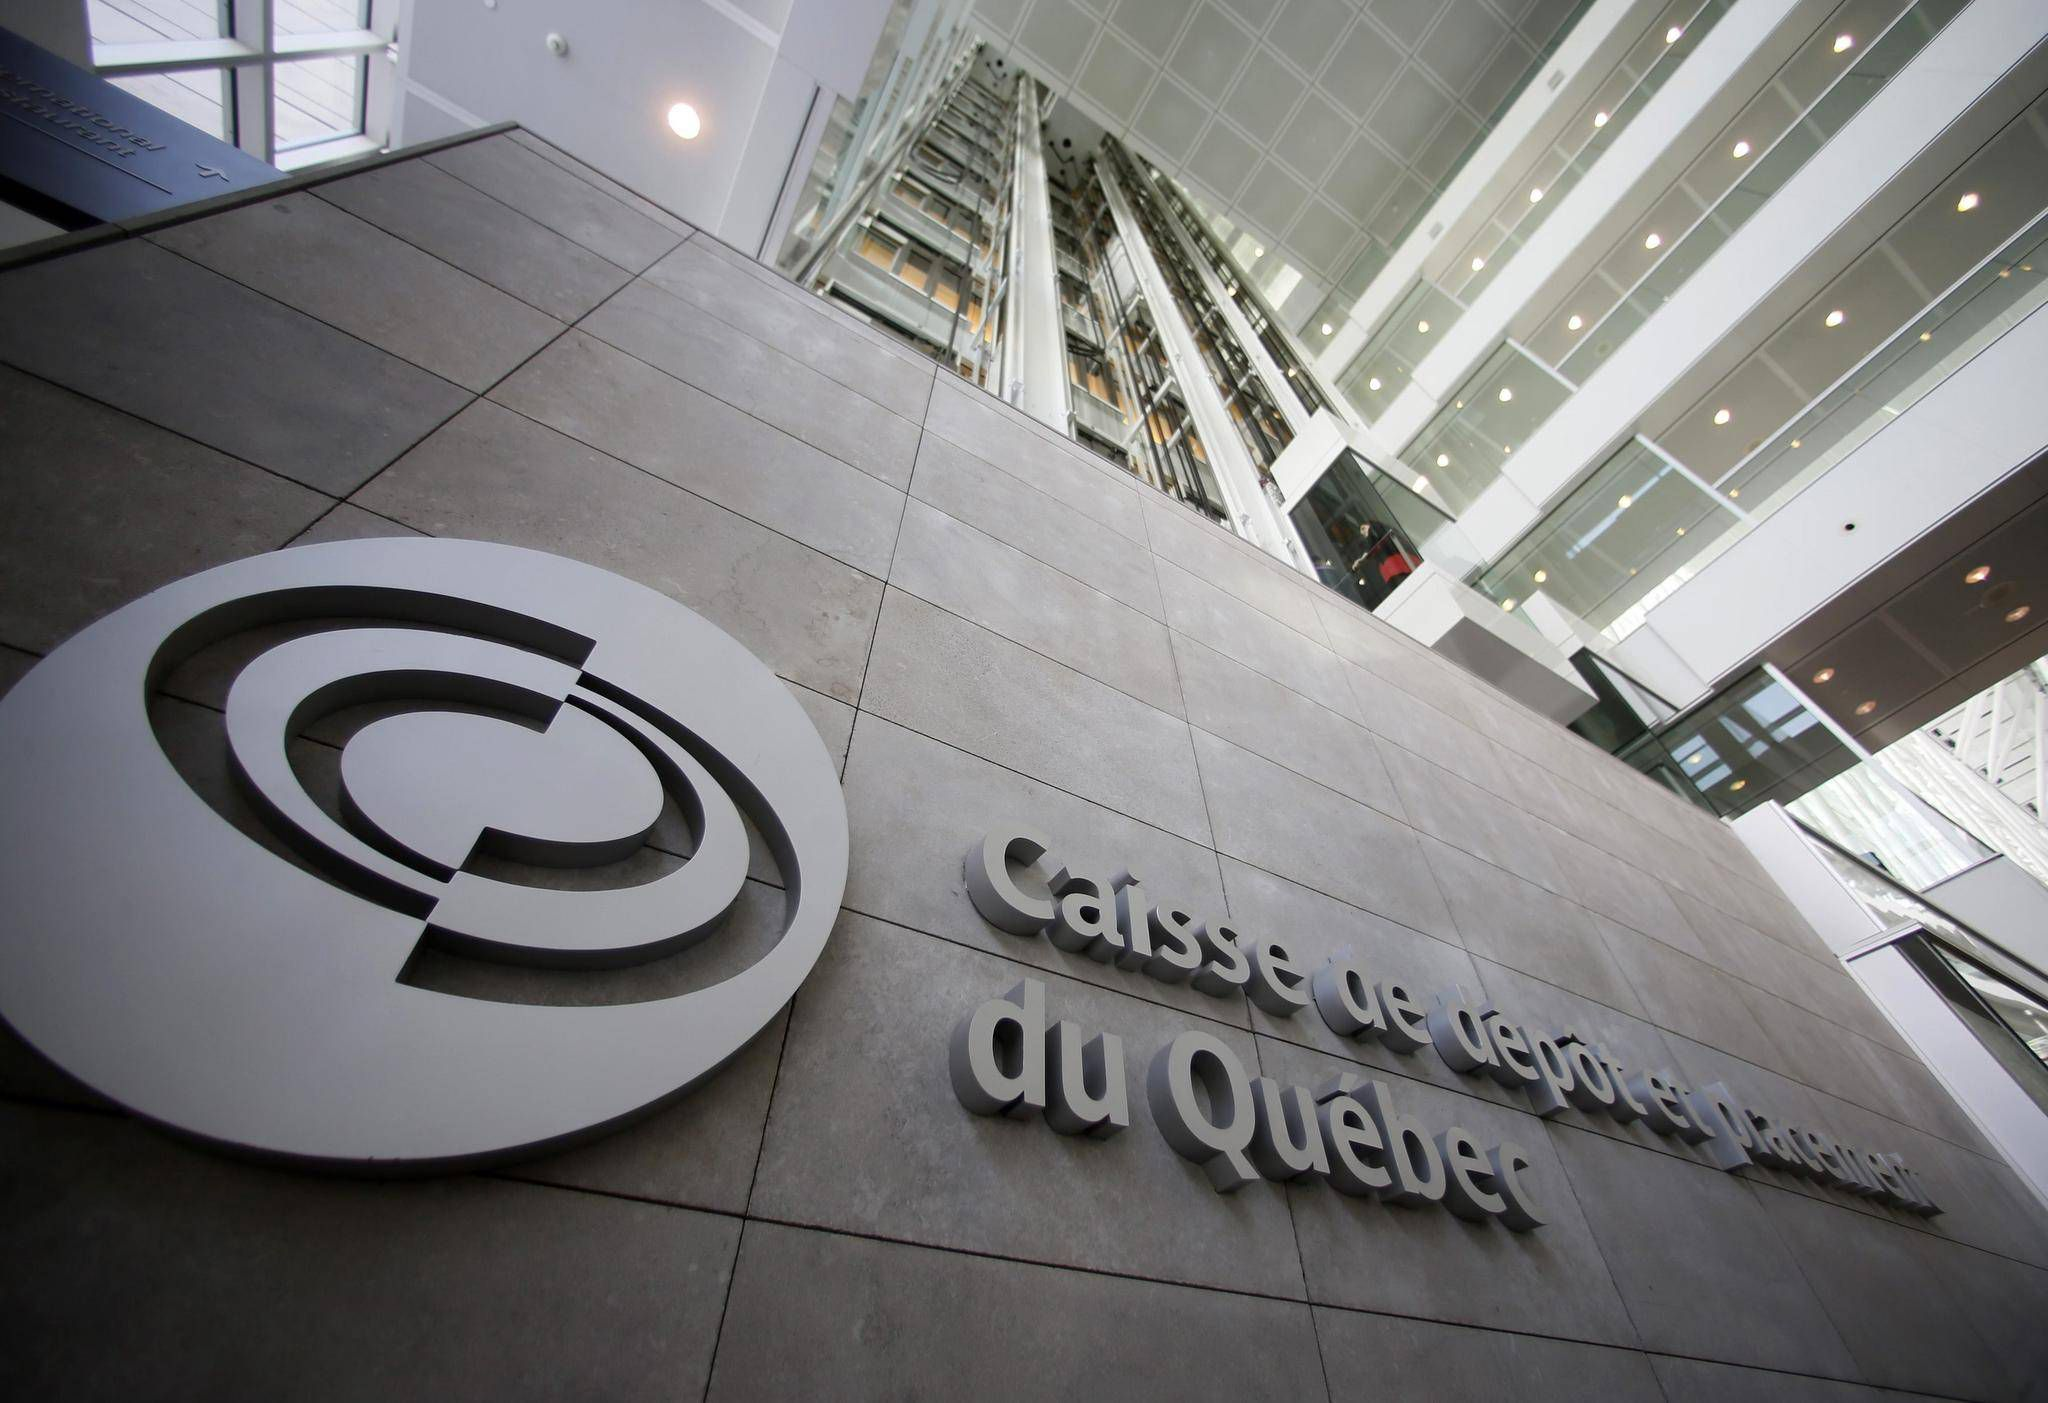 Montreal telemedicine startup Dialogue raises $40-million in financing led by Caisse